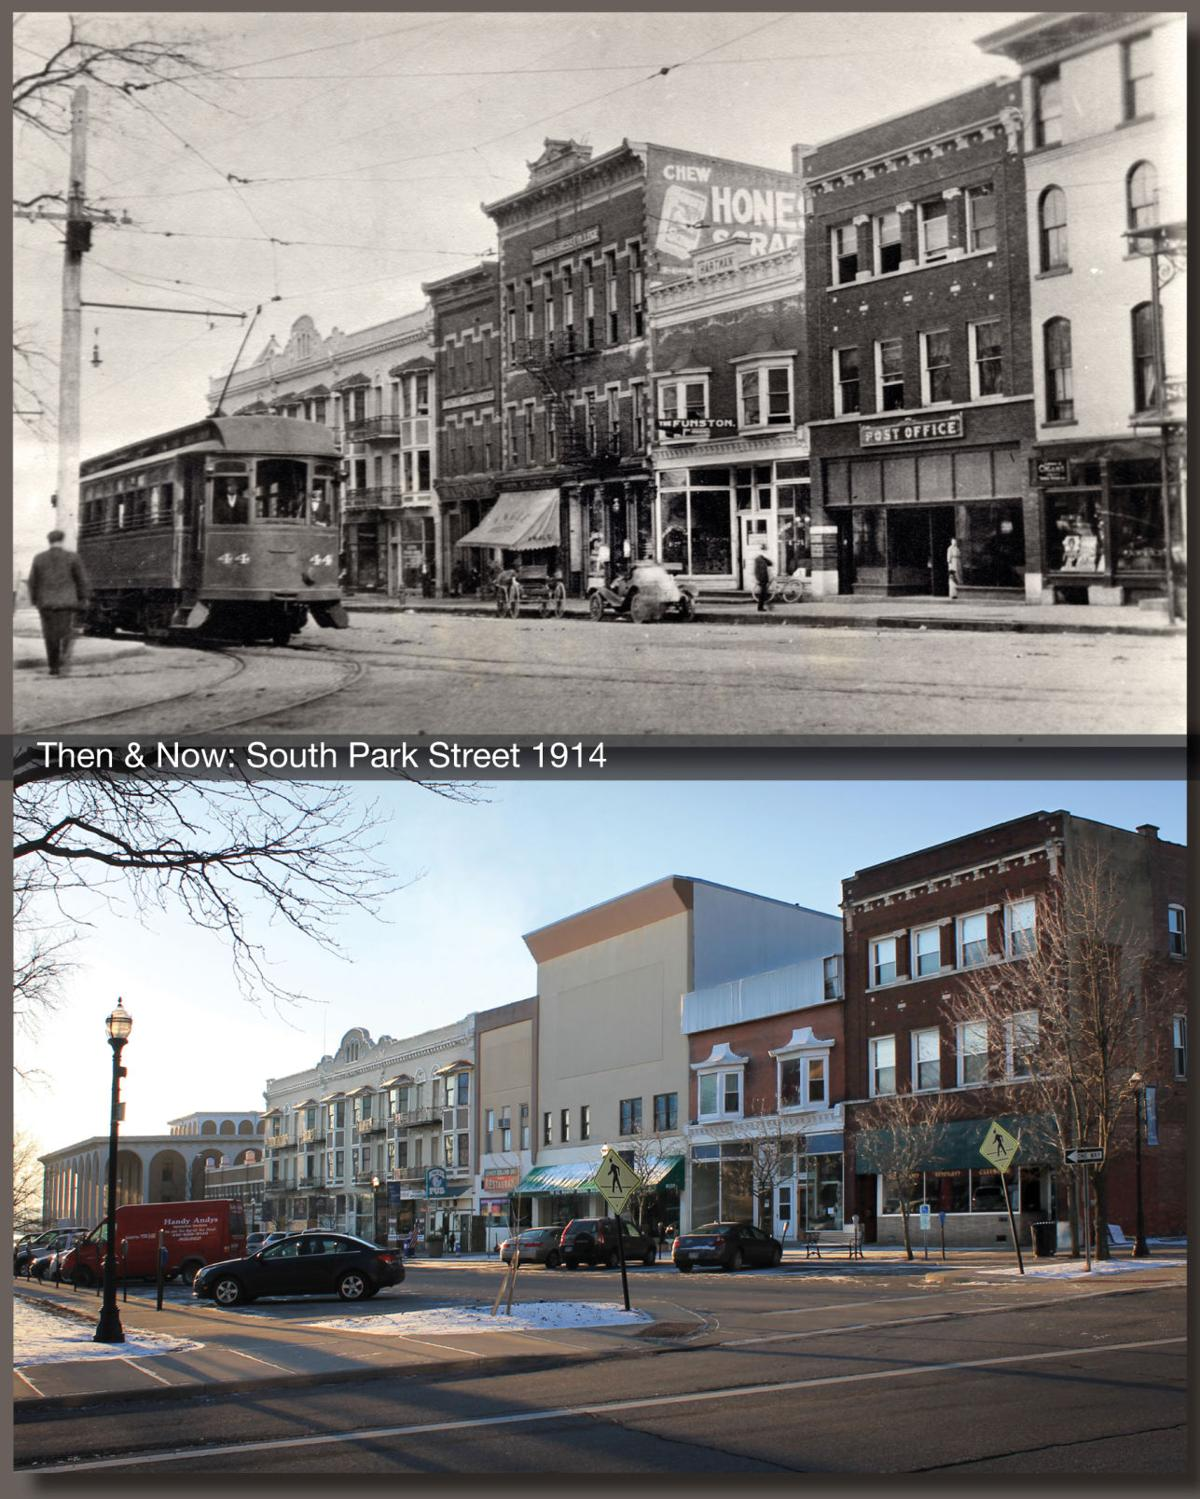 Then & Now: South Park Street in 1914